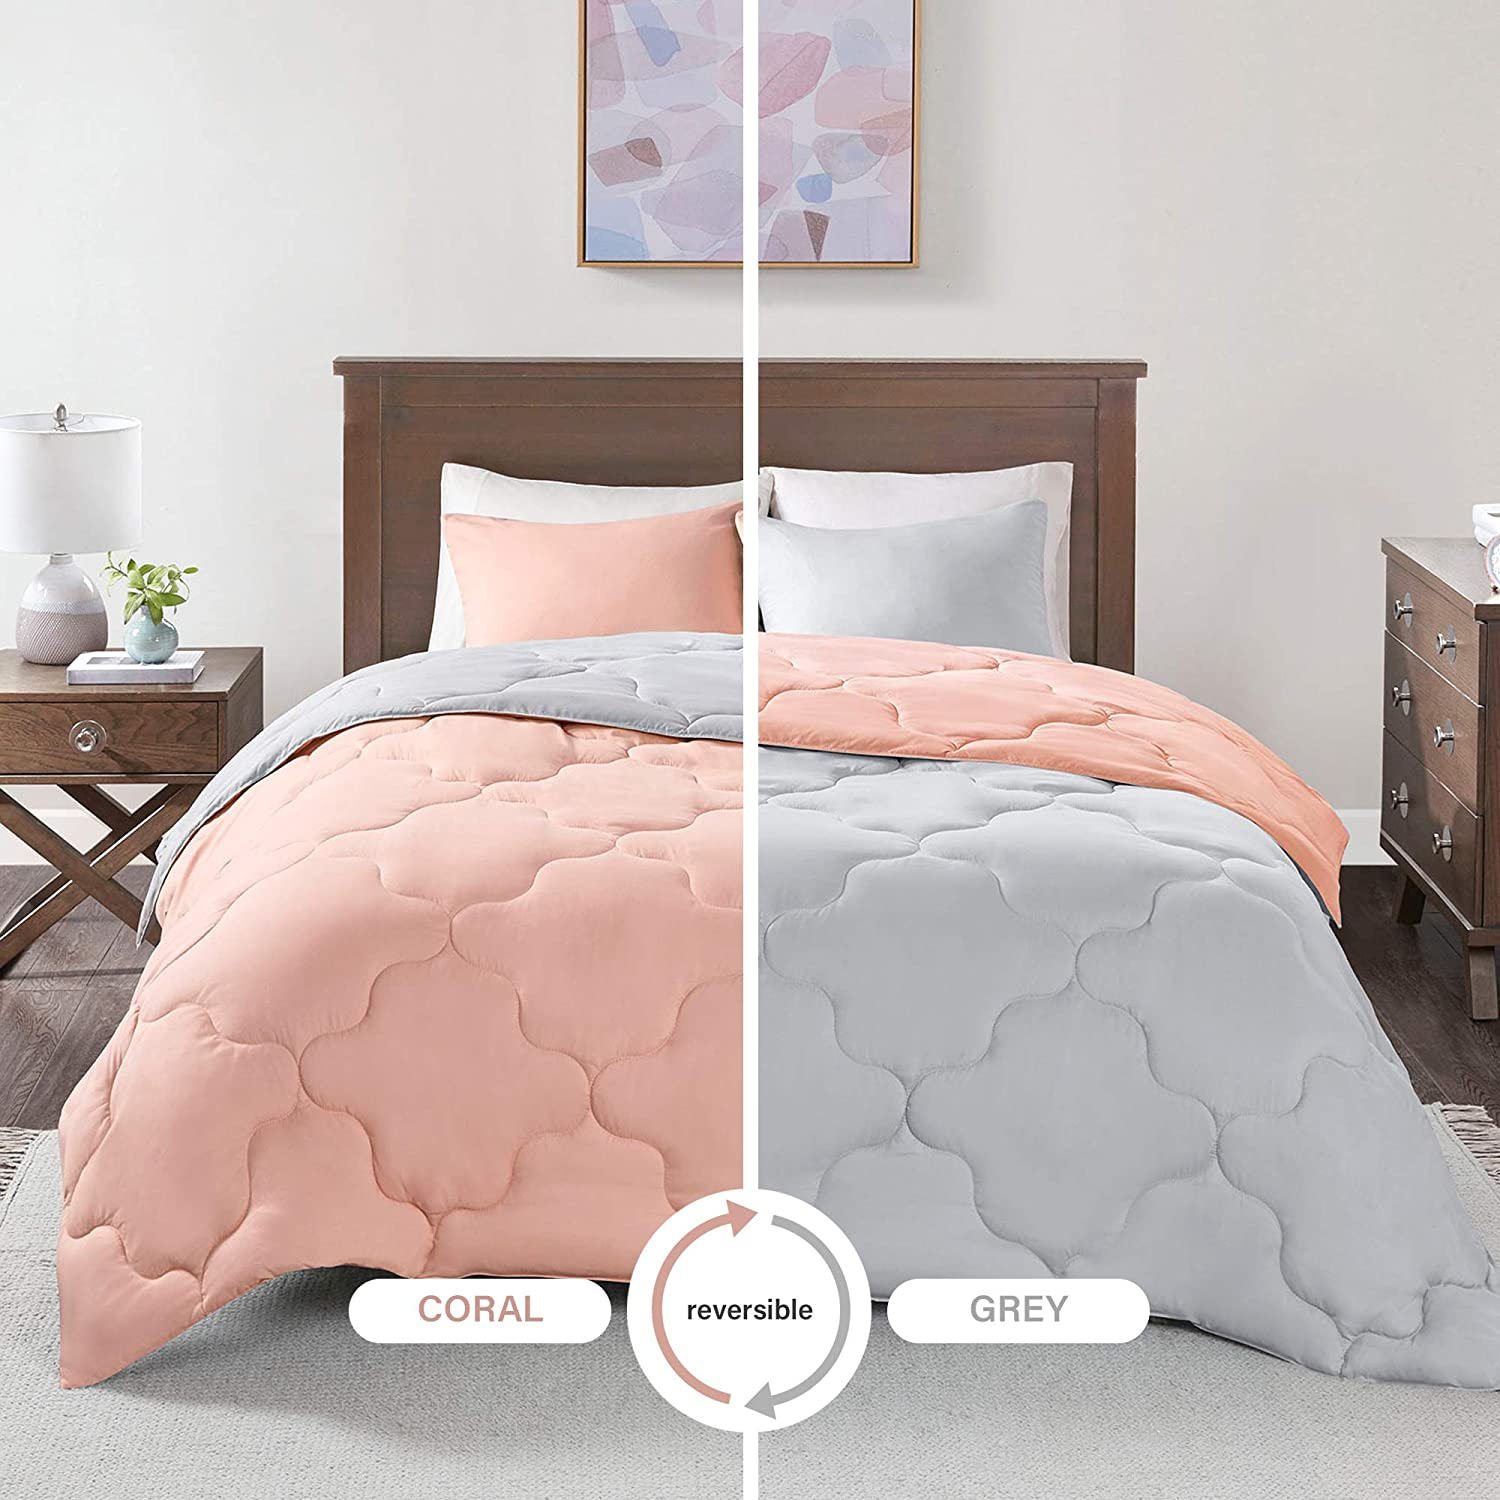 Comfort Spaces Vixie 3 Piece Comforter Set All Season Reversible Goose Down Alternative Stitched Geometrical Pattern Bedding, Full/Queen, Coral/Grey